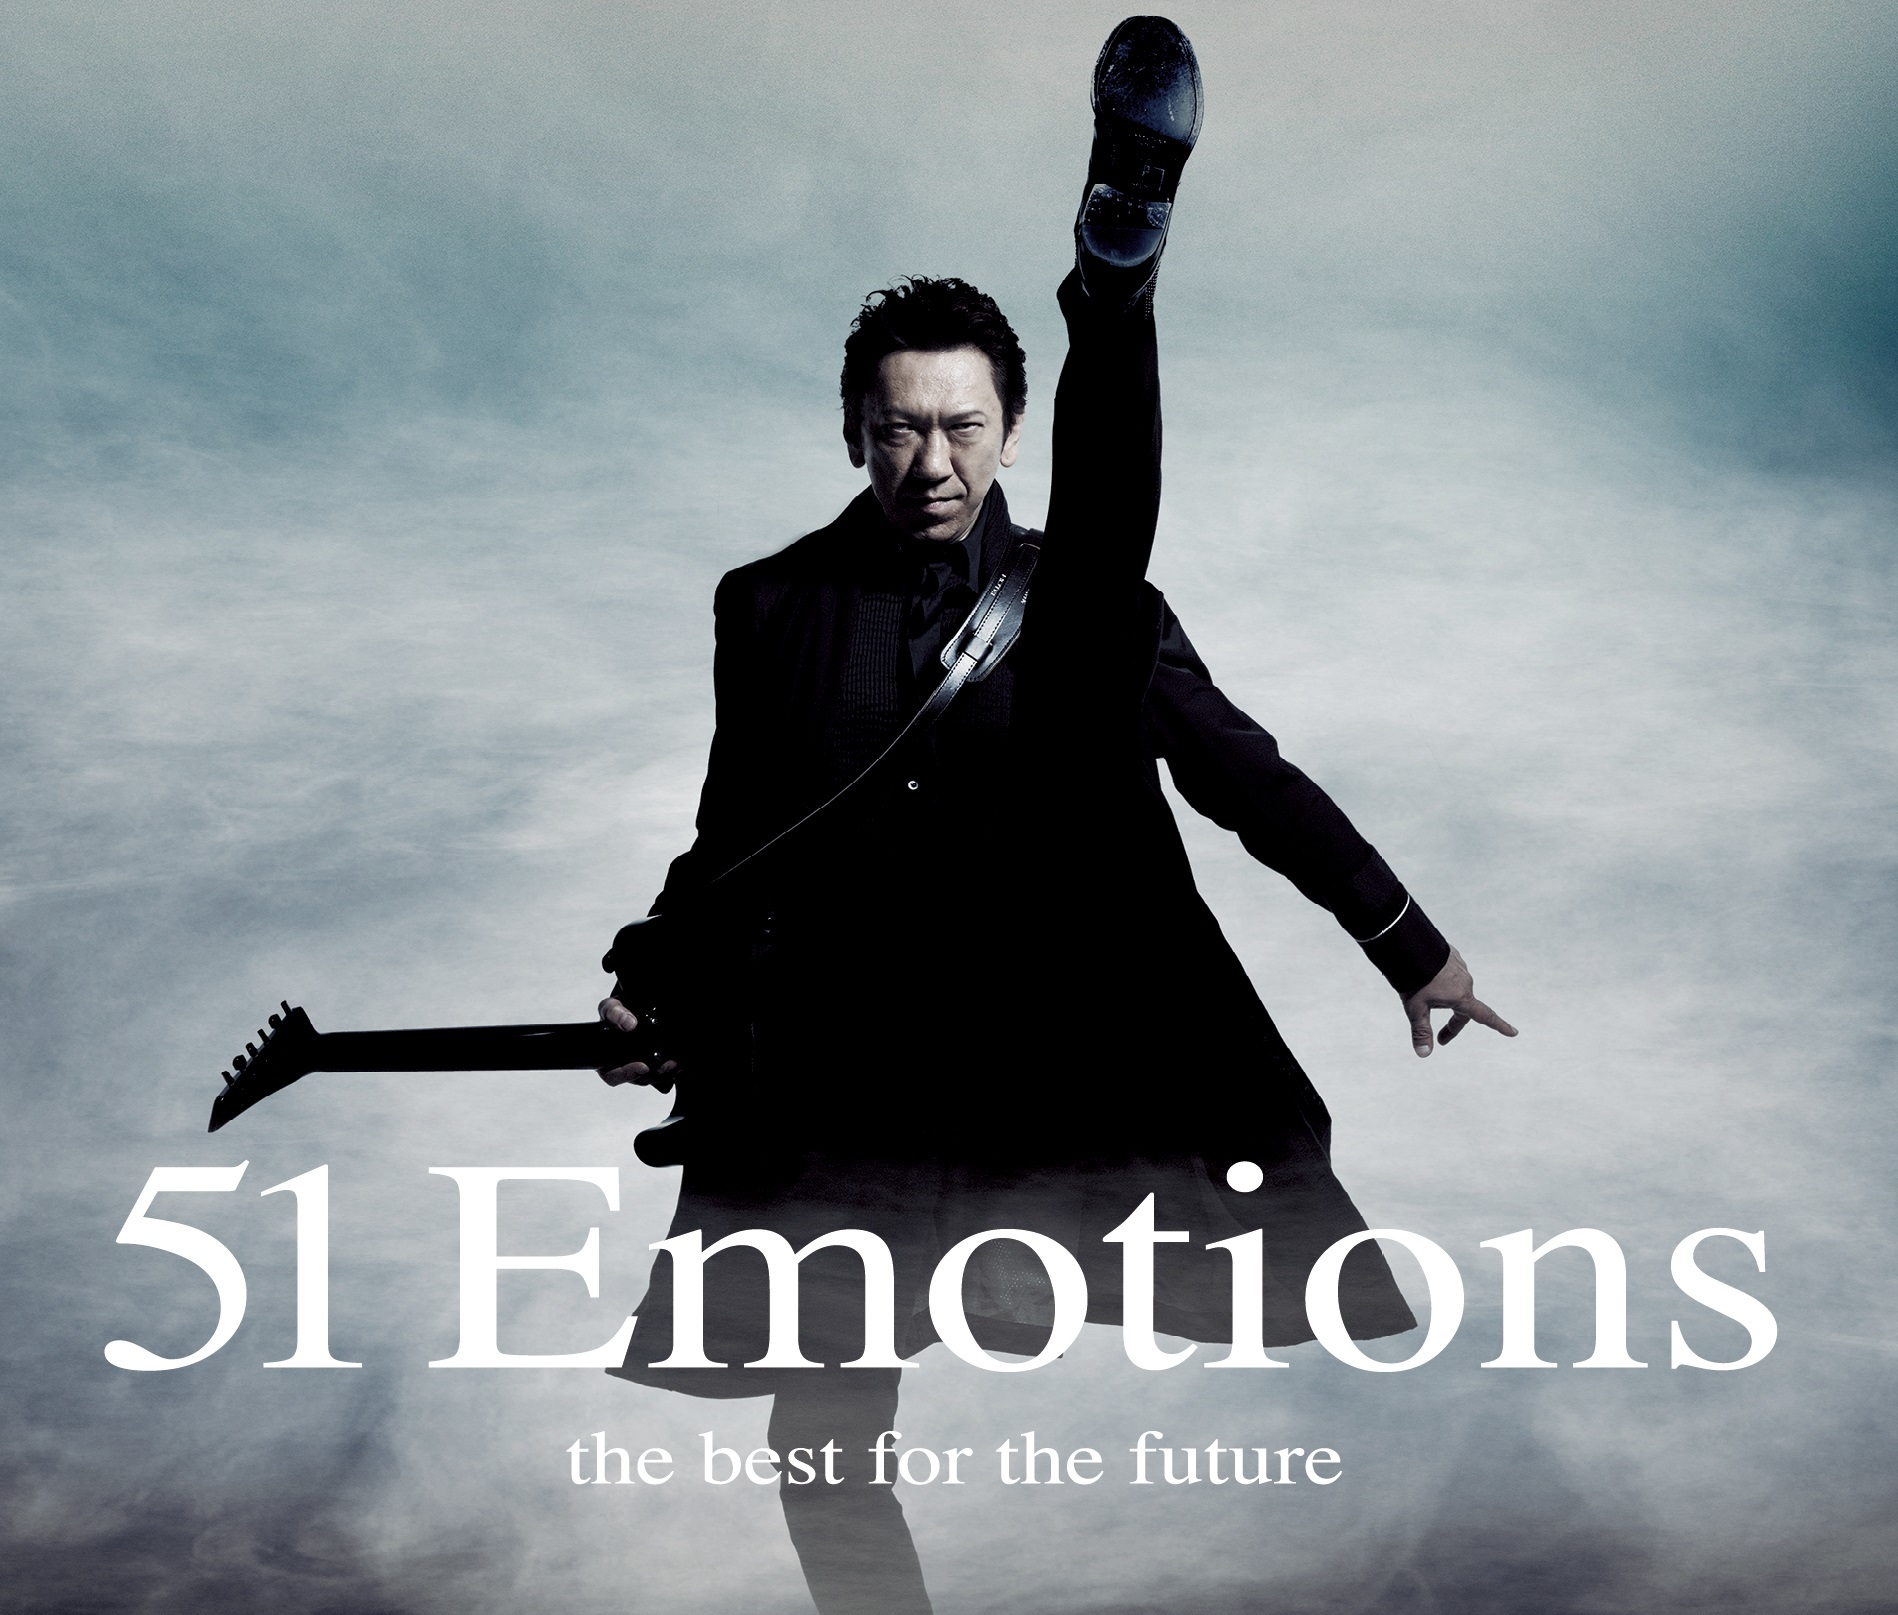 『51 Emotions -the best for the future-』